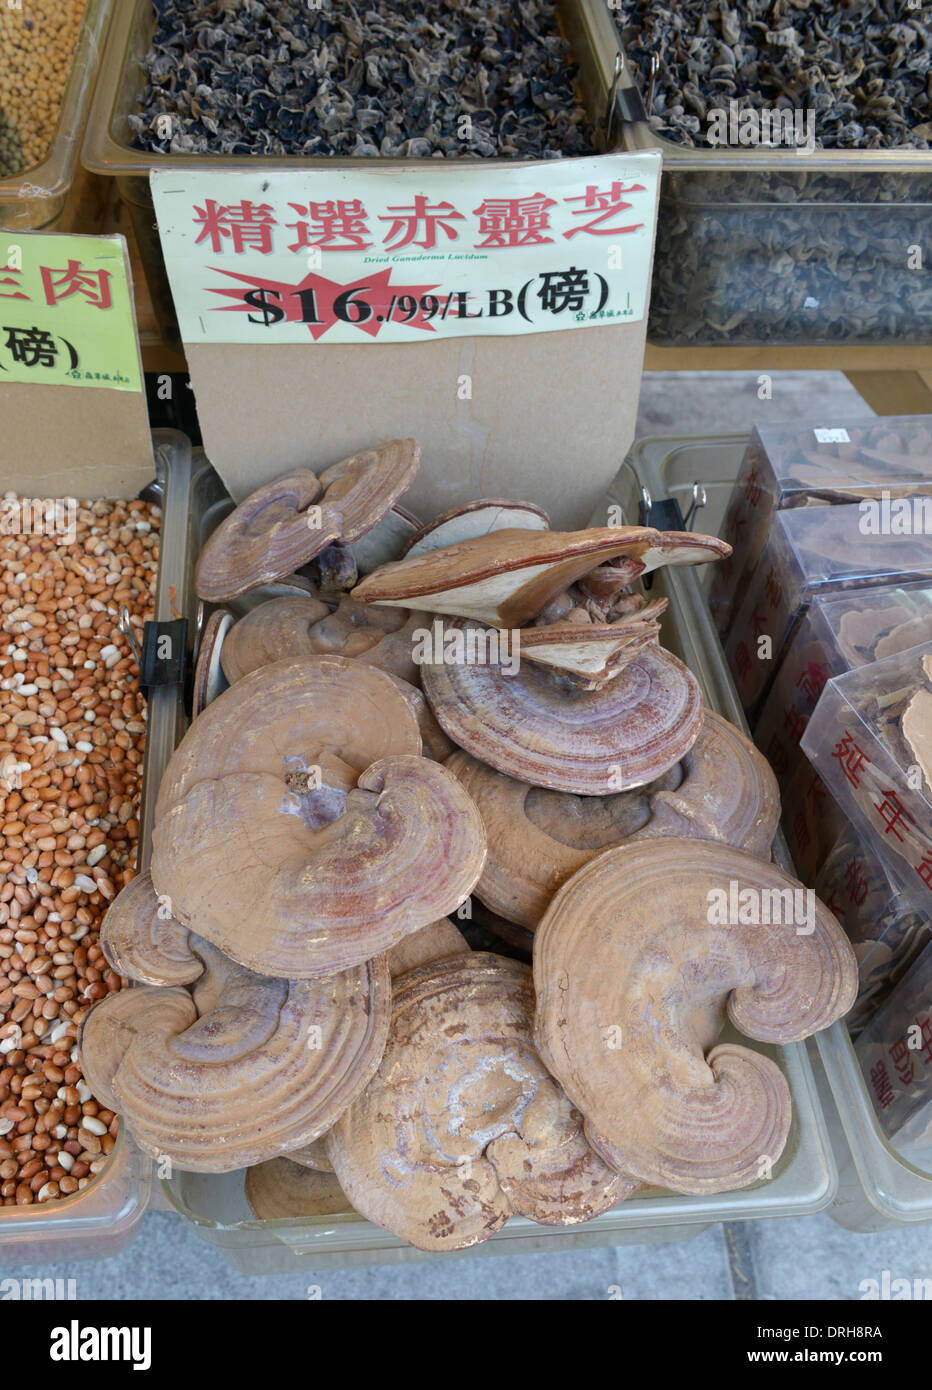 Dried fungus for sale, Chinese market, Chinatown - Stock Image